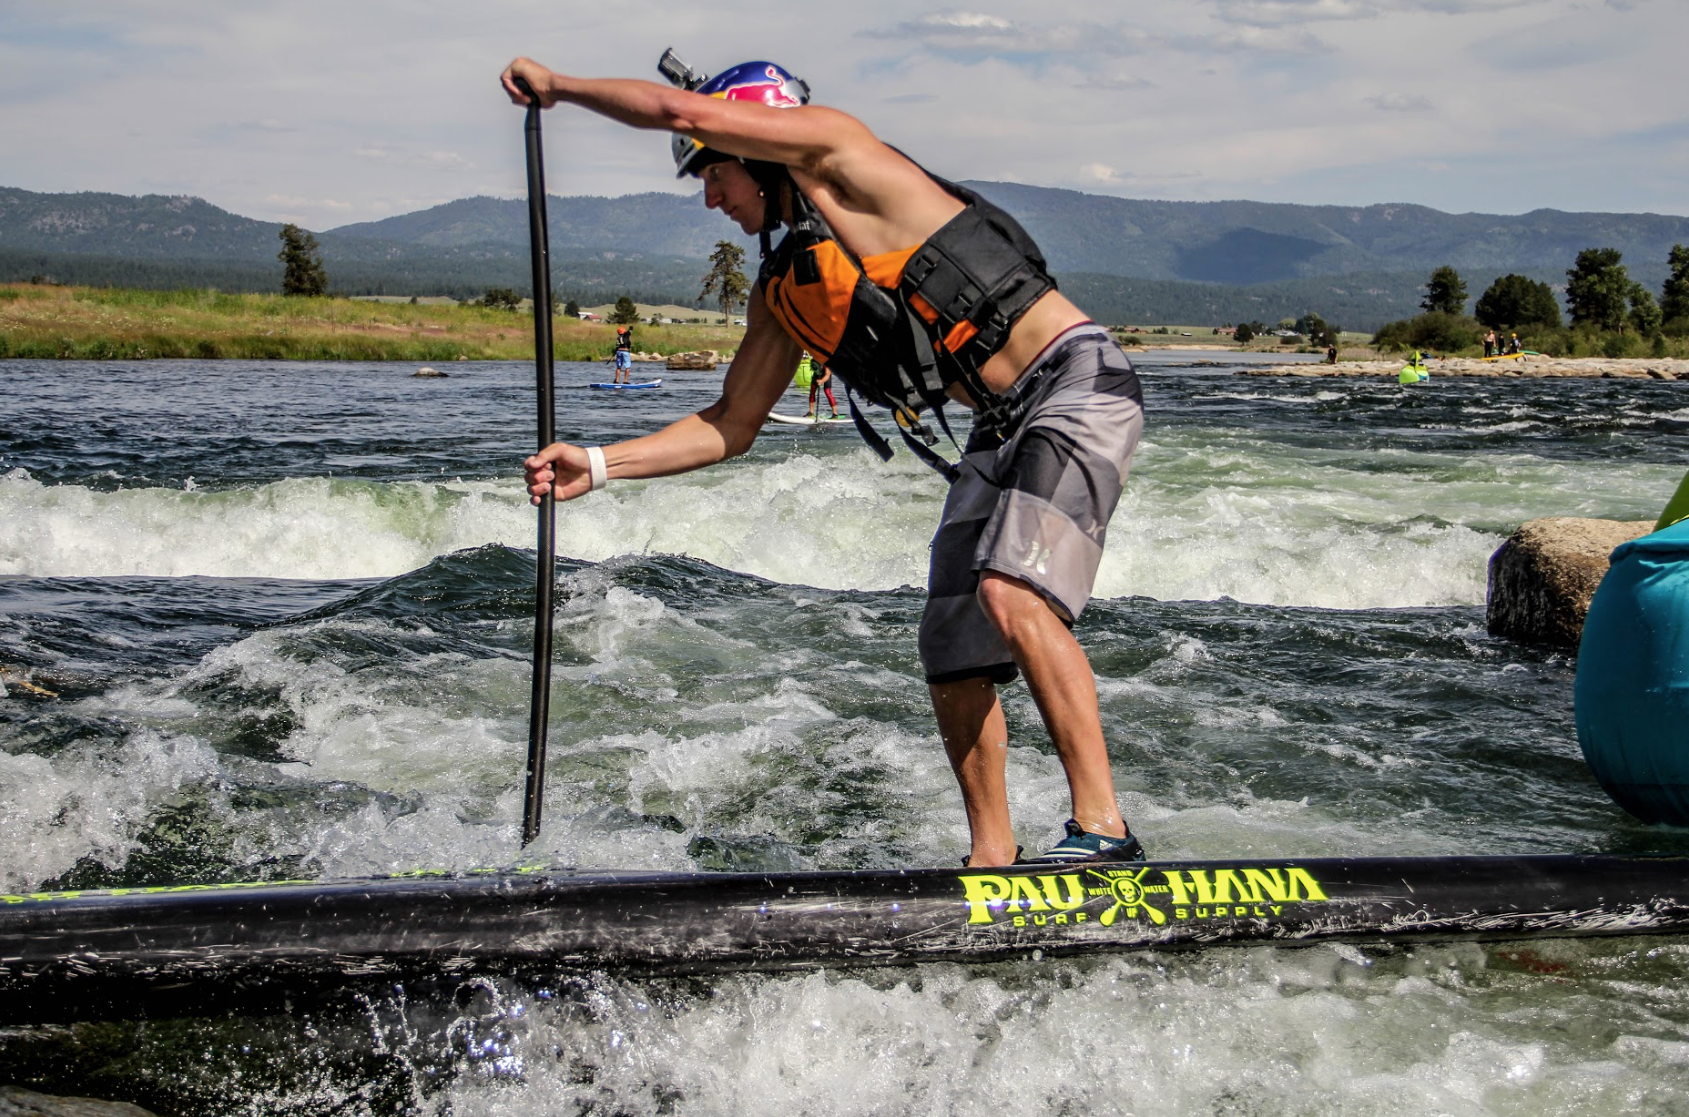 White water SUP racing